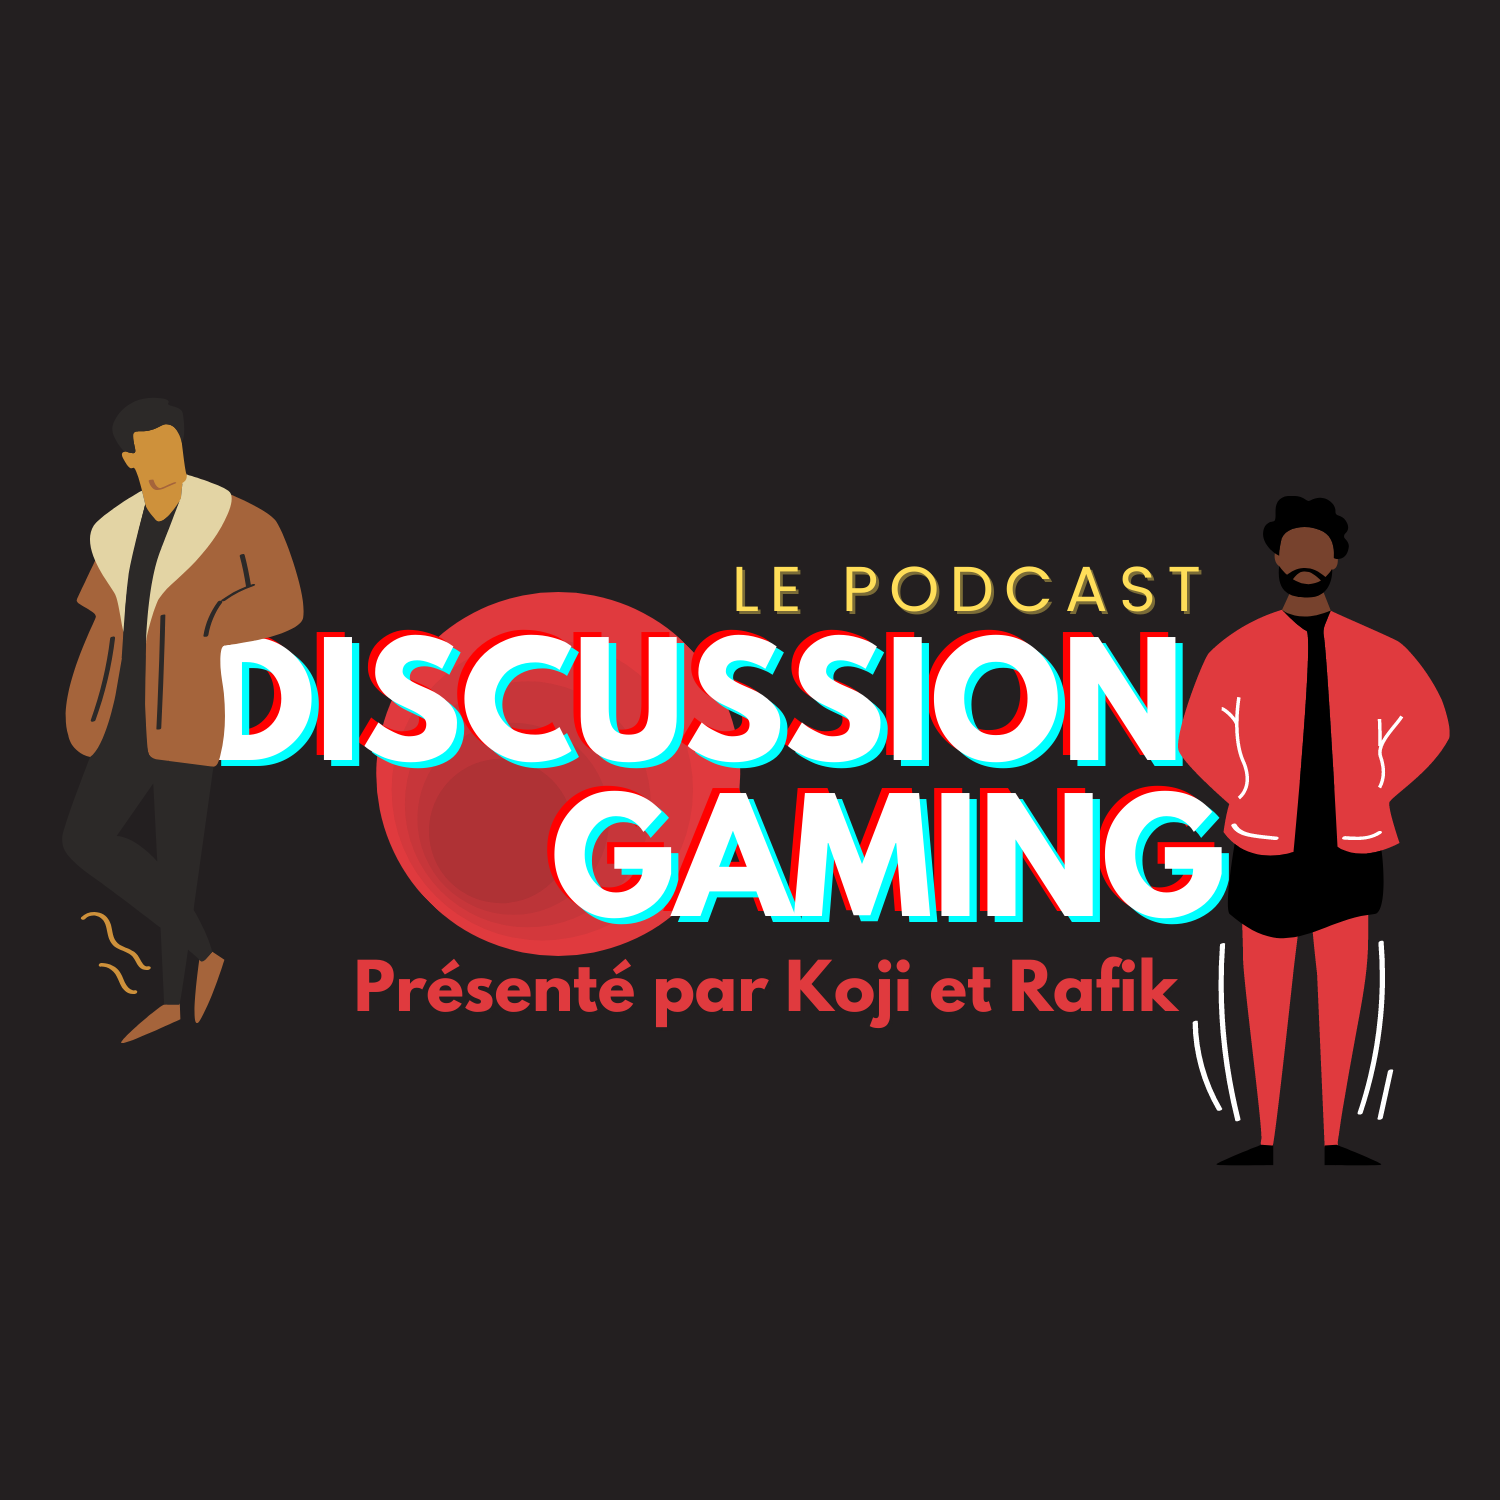 Discussion Gaming